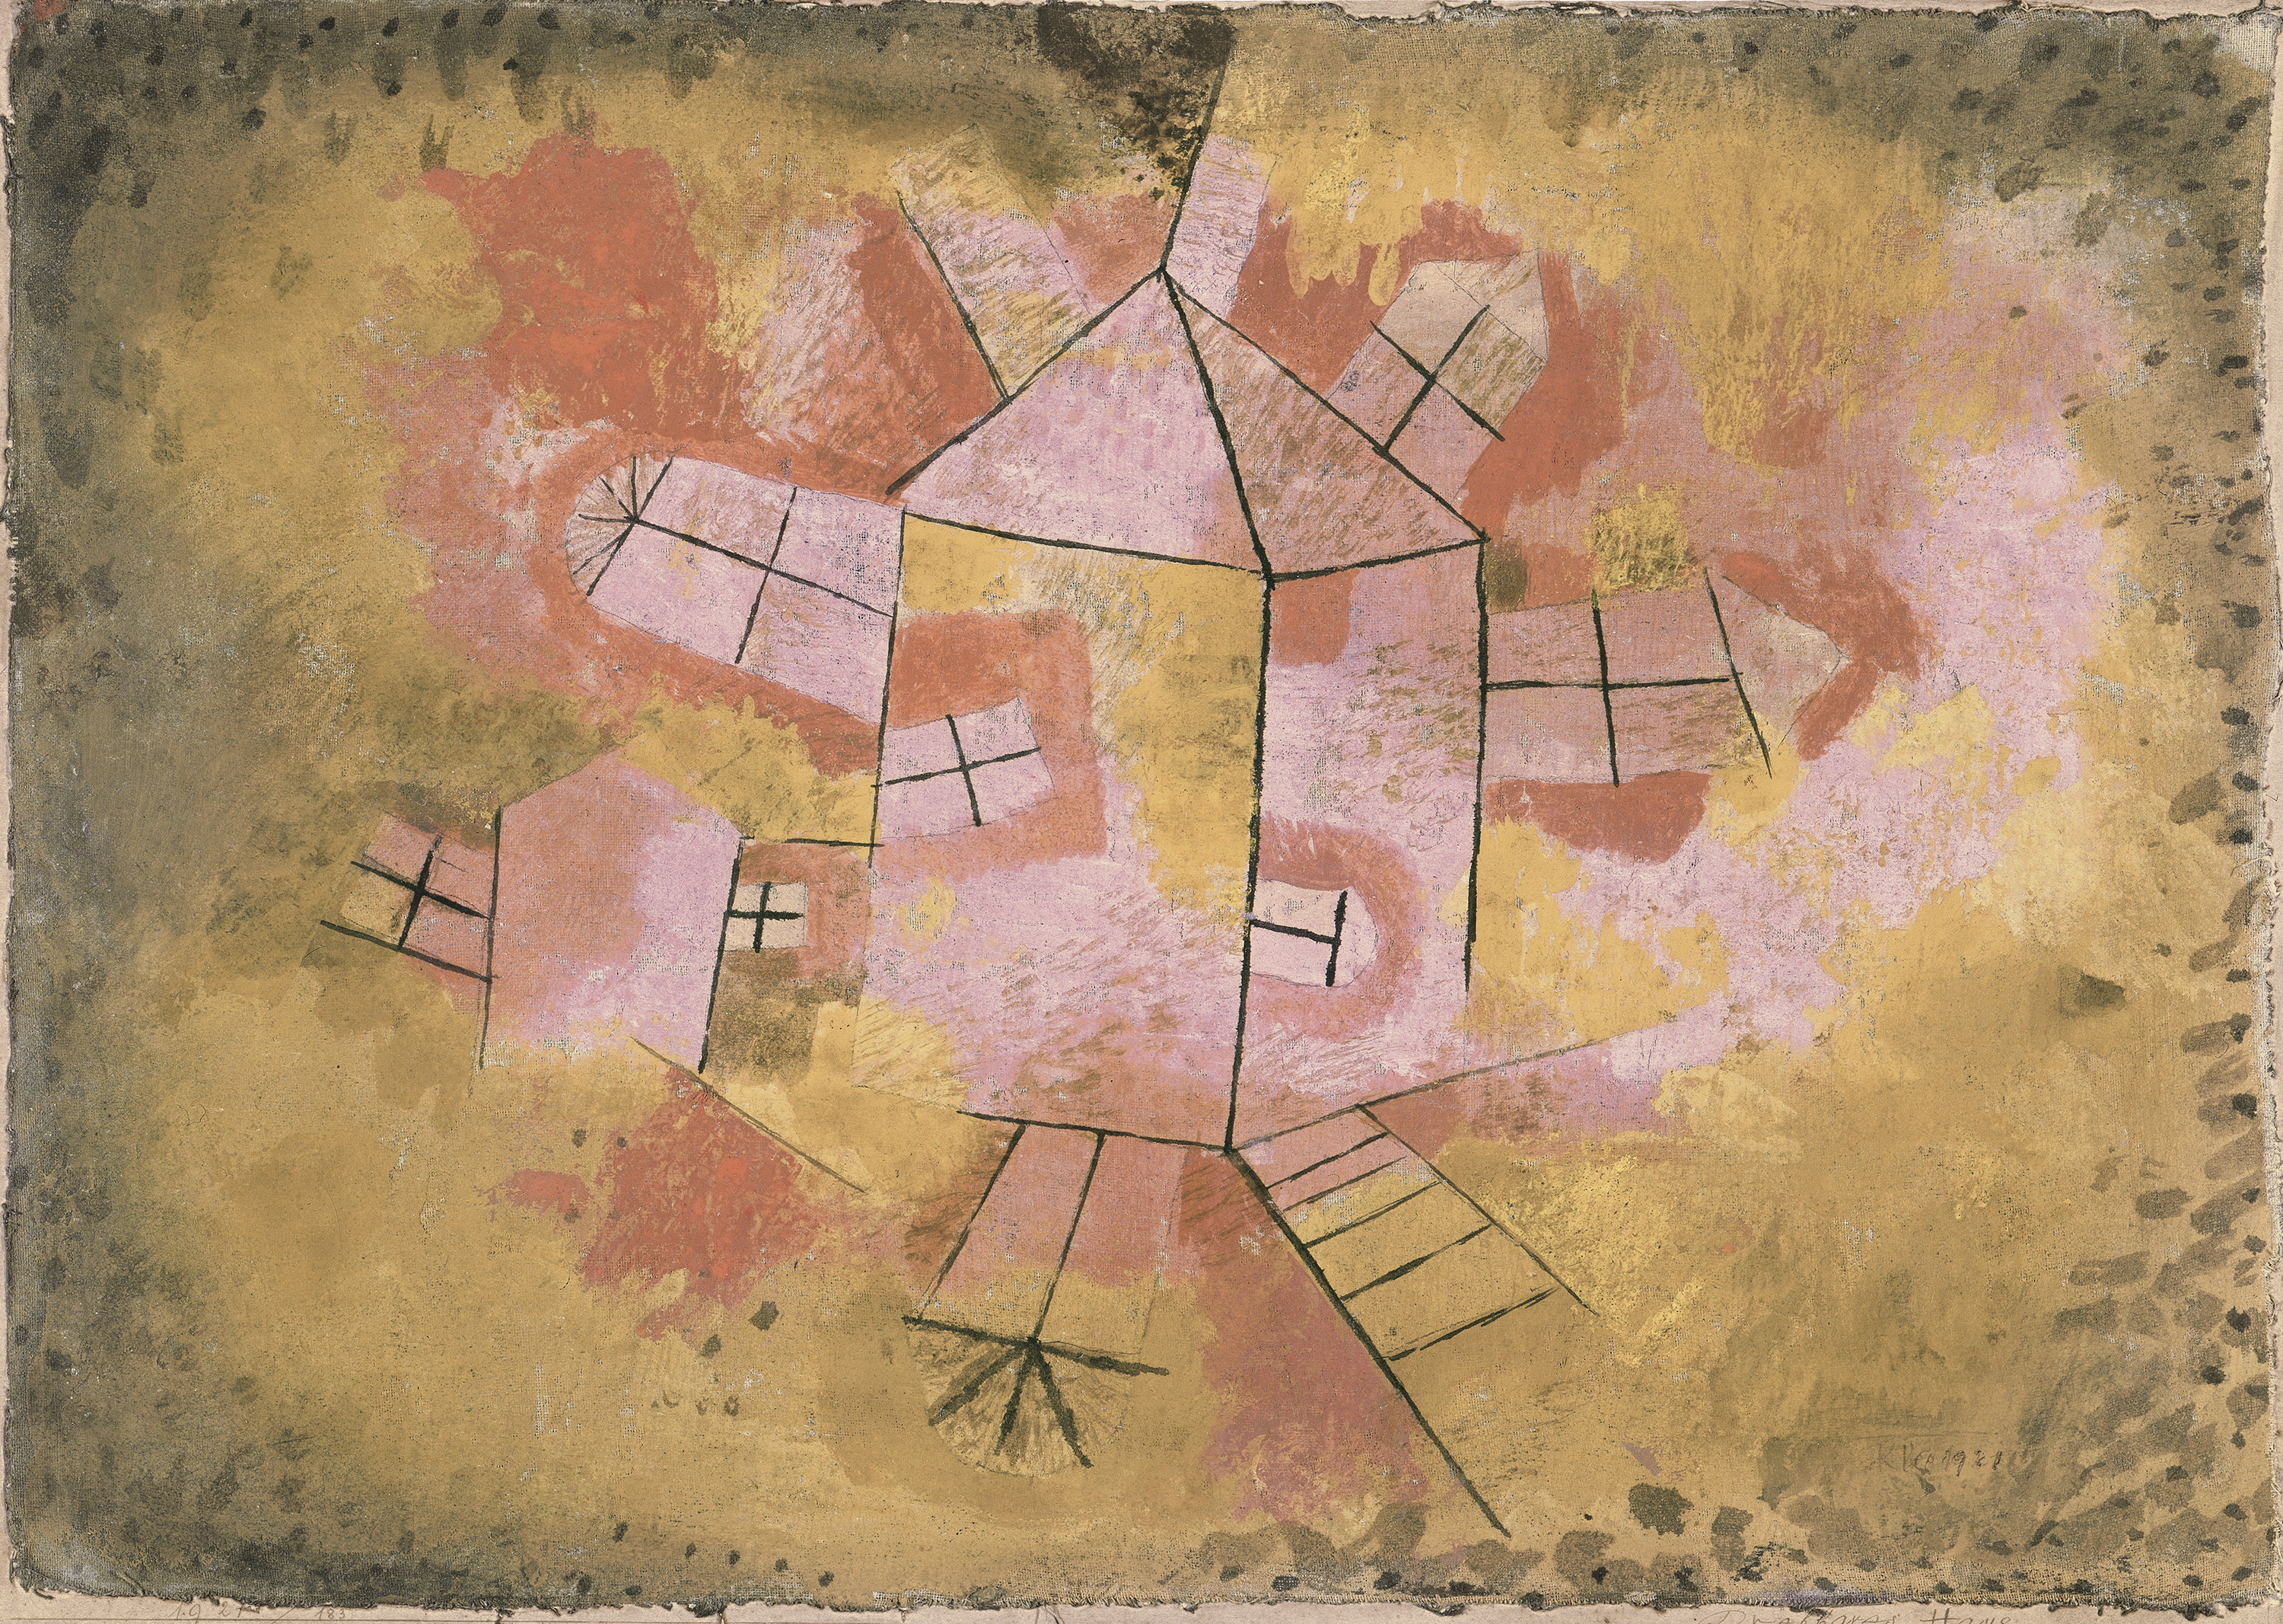 Revolving House, 1921, 183 - Klee, Paul. Museo Nacional Thyssen ...